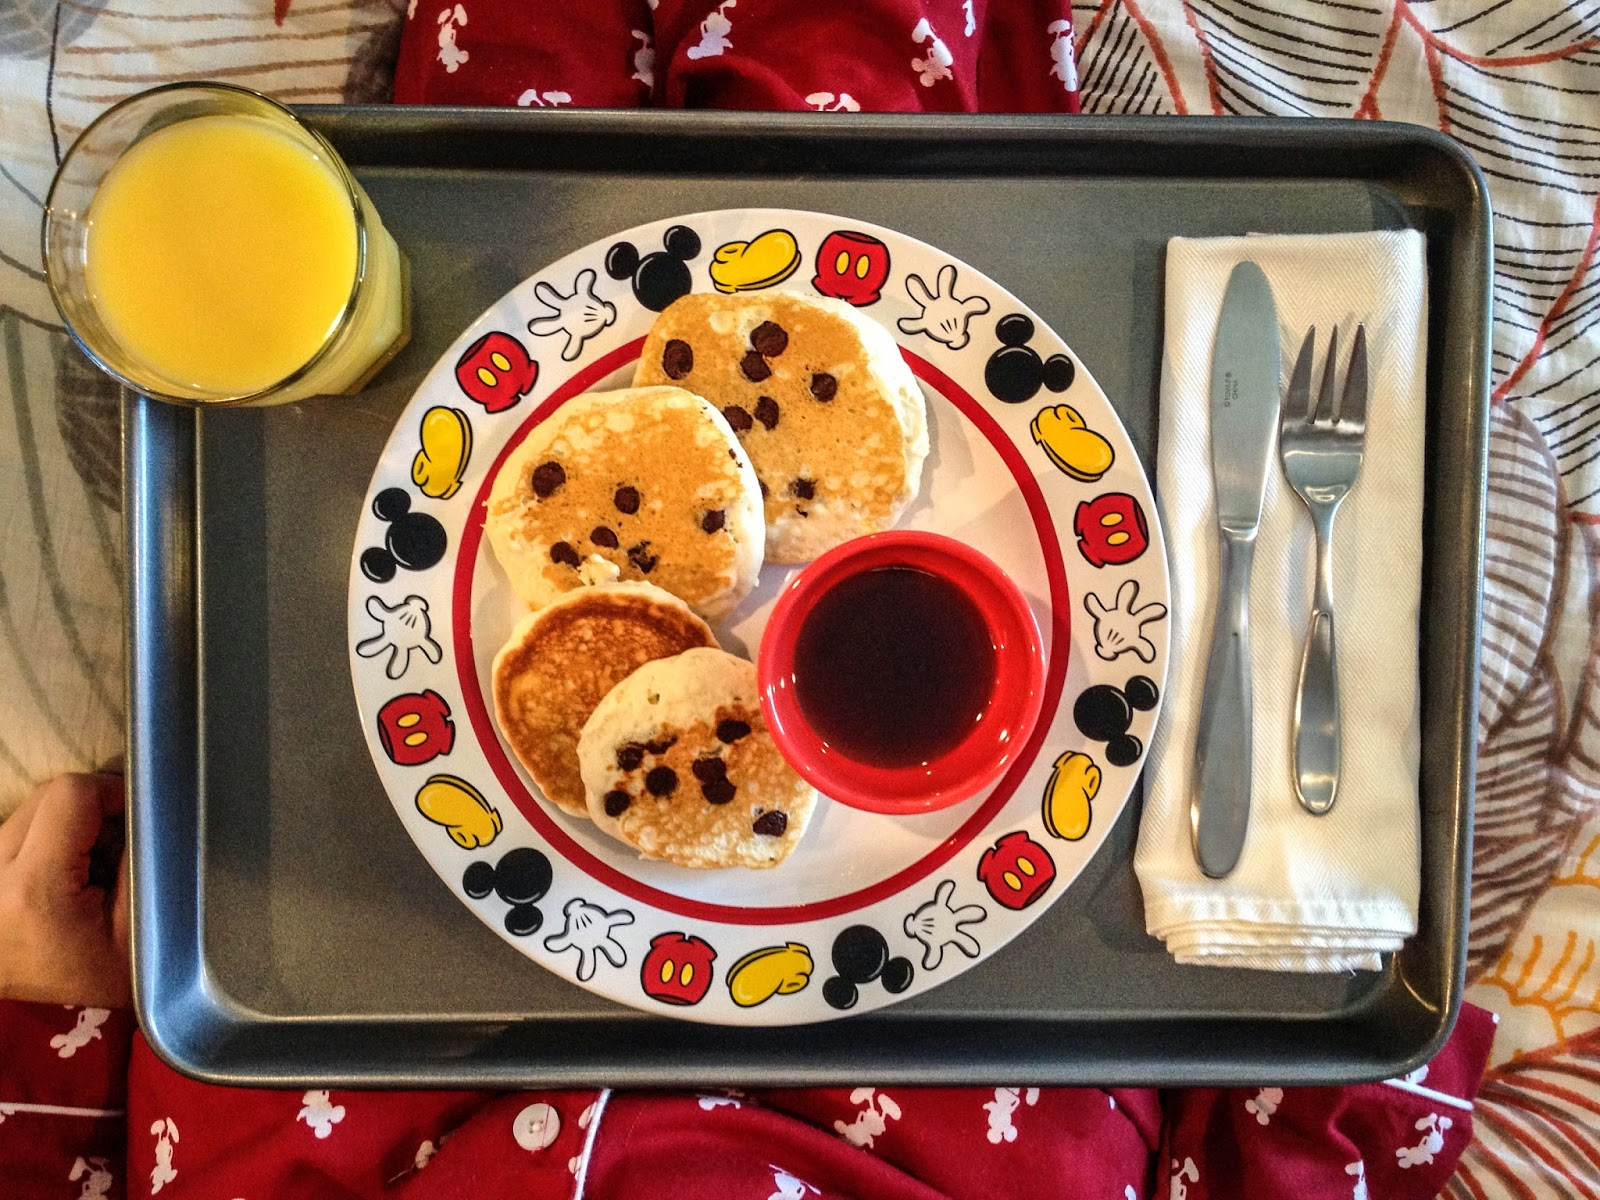 breakfast in bed, chocolate chip pancakes, pancakes, mickey mouse plate, disney plate, disney dishes, disney pjs